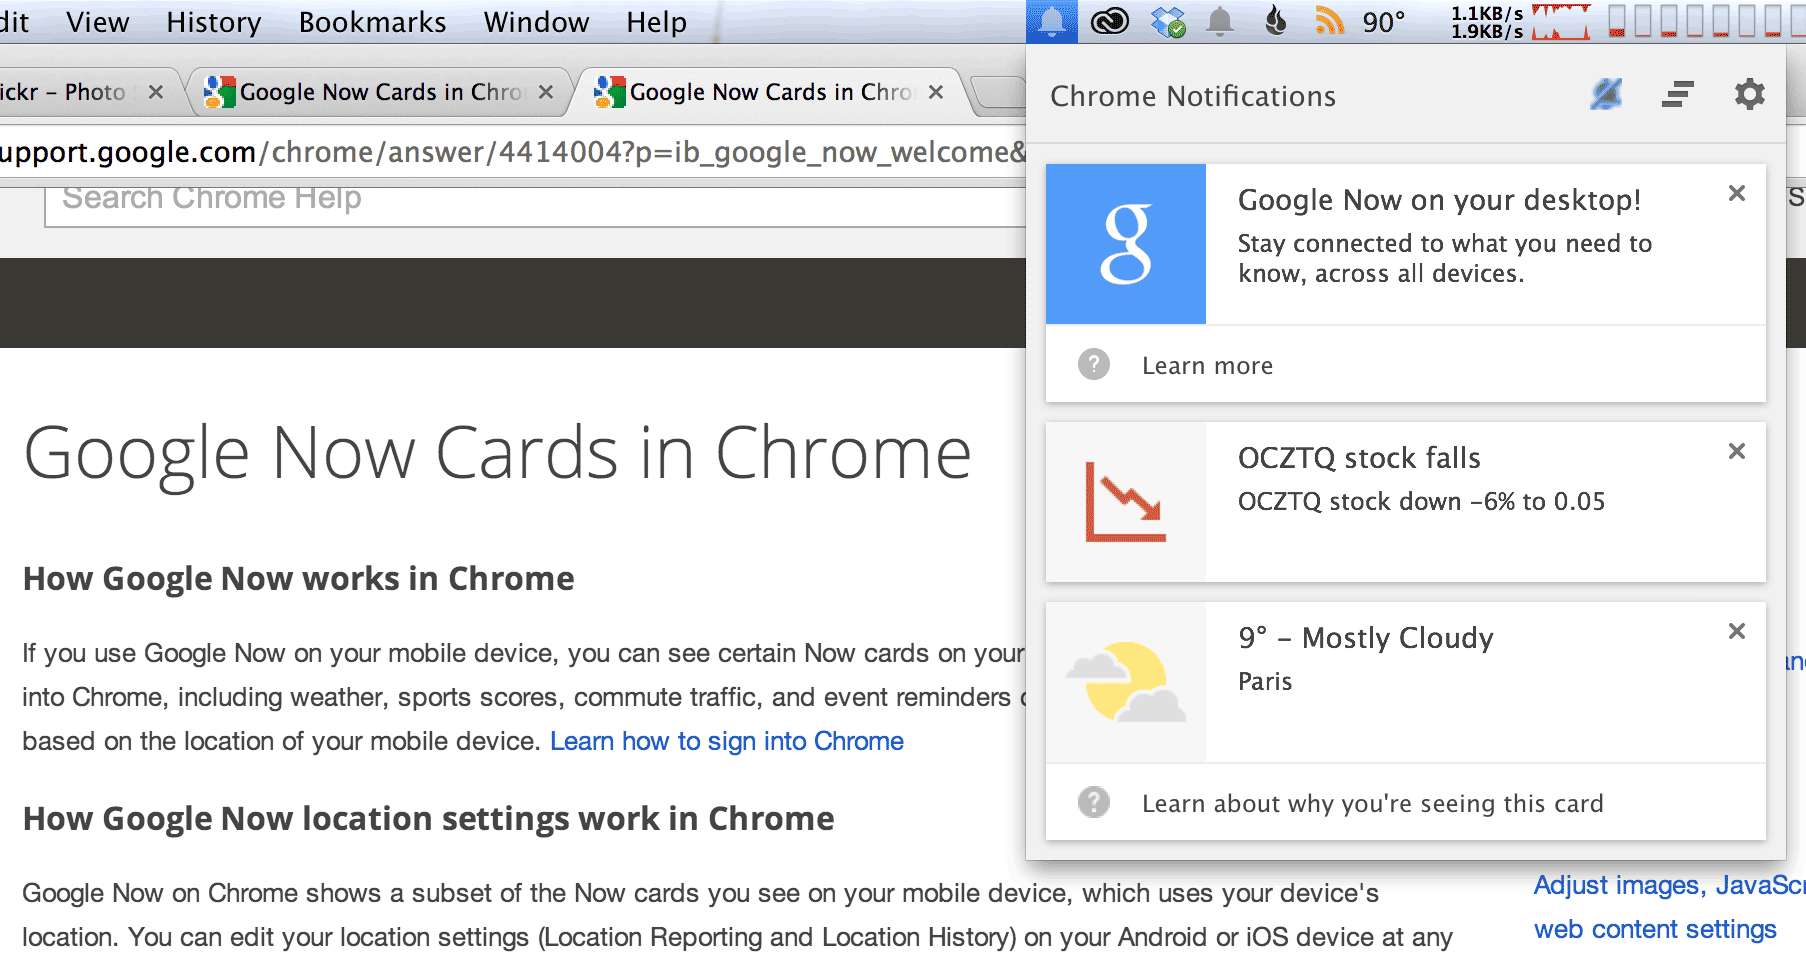 Google Now notifications have arrived in early test builds of Chrome.